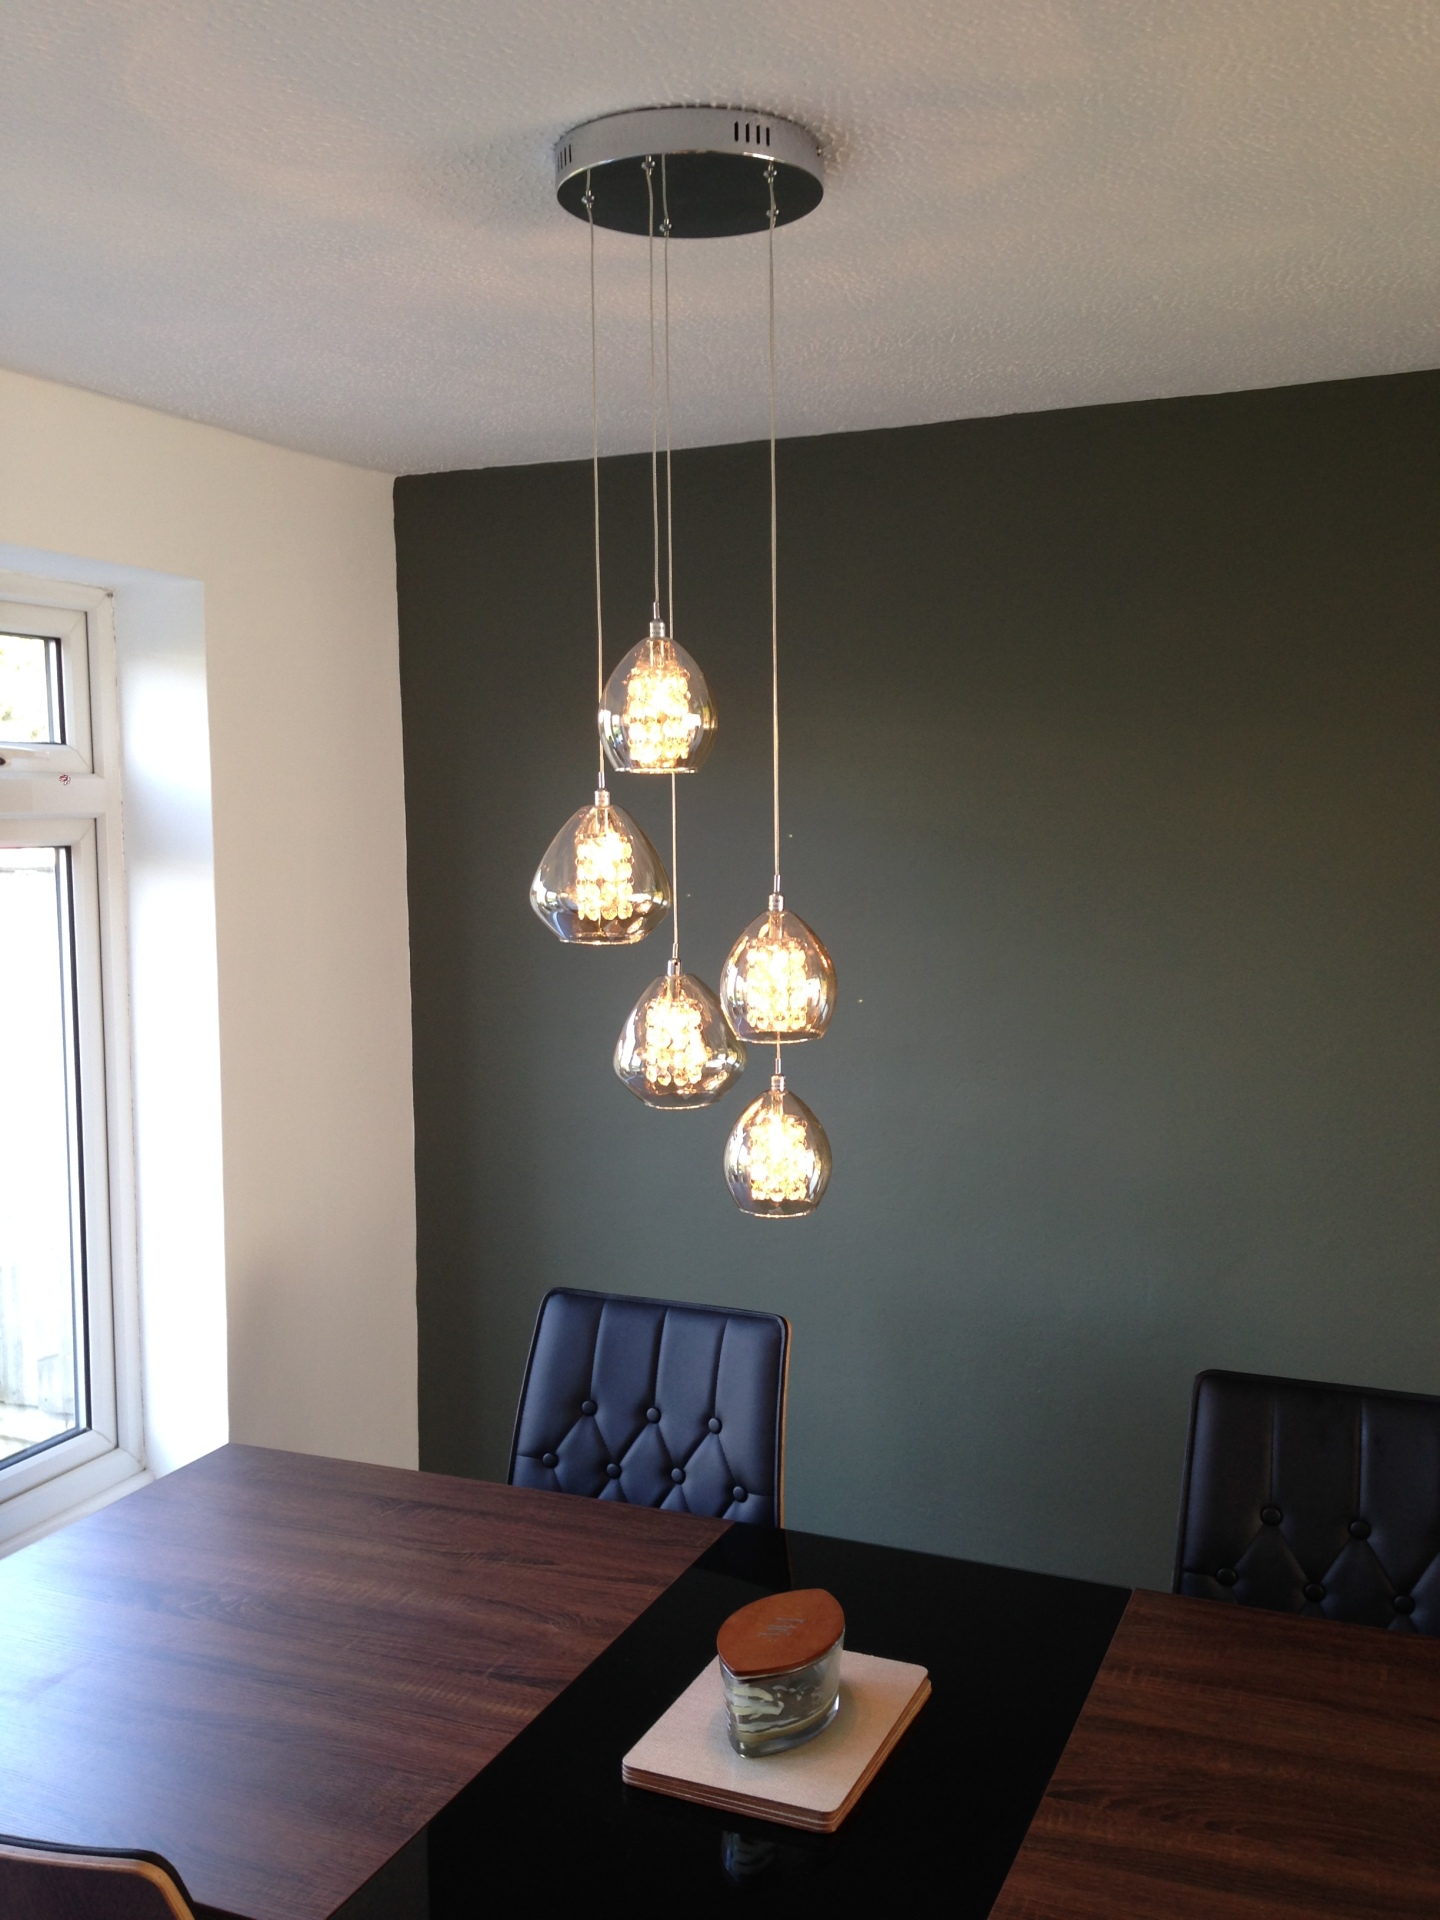 Ceiling Pendant fitted by Peter in Witham, Essex